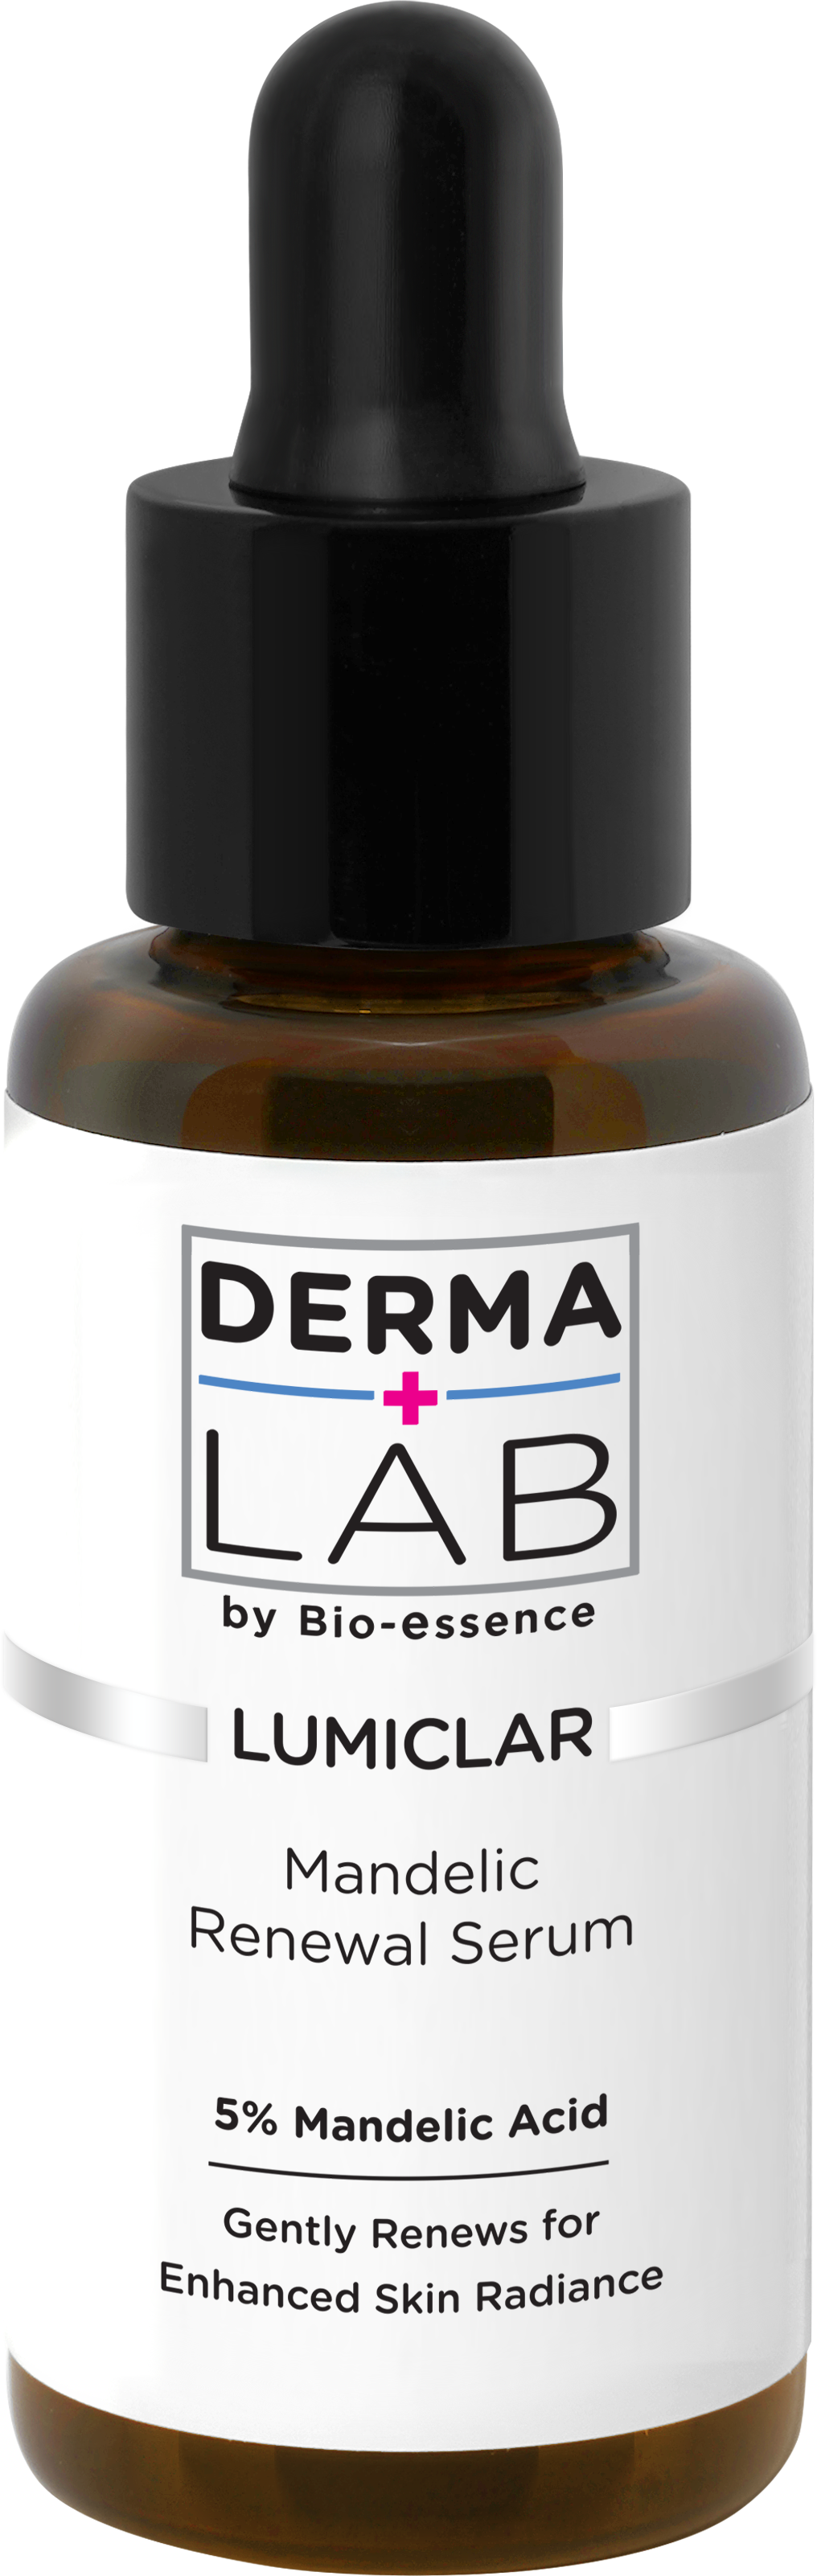 One of our favourite products from Derma Lab, the Lumiclar Mandelic Renewal Serum. Photo: Derma Lab